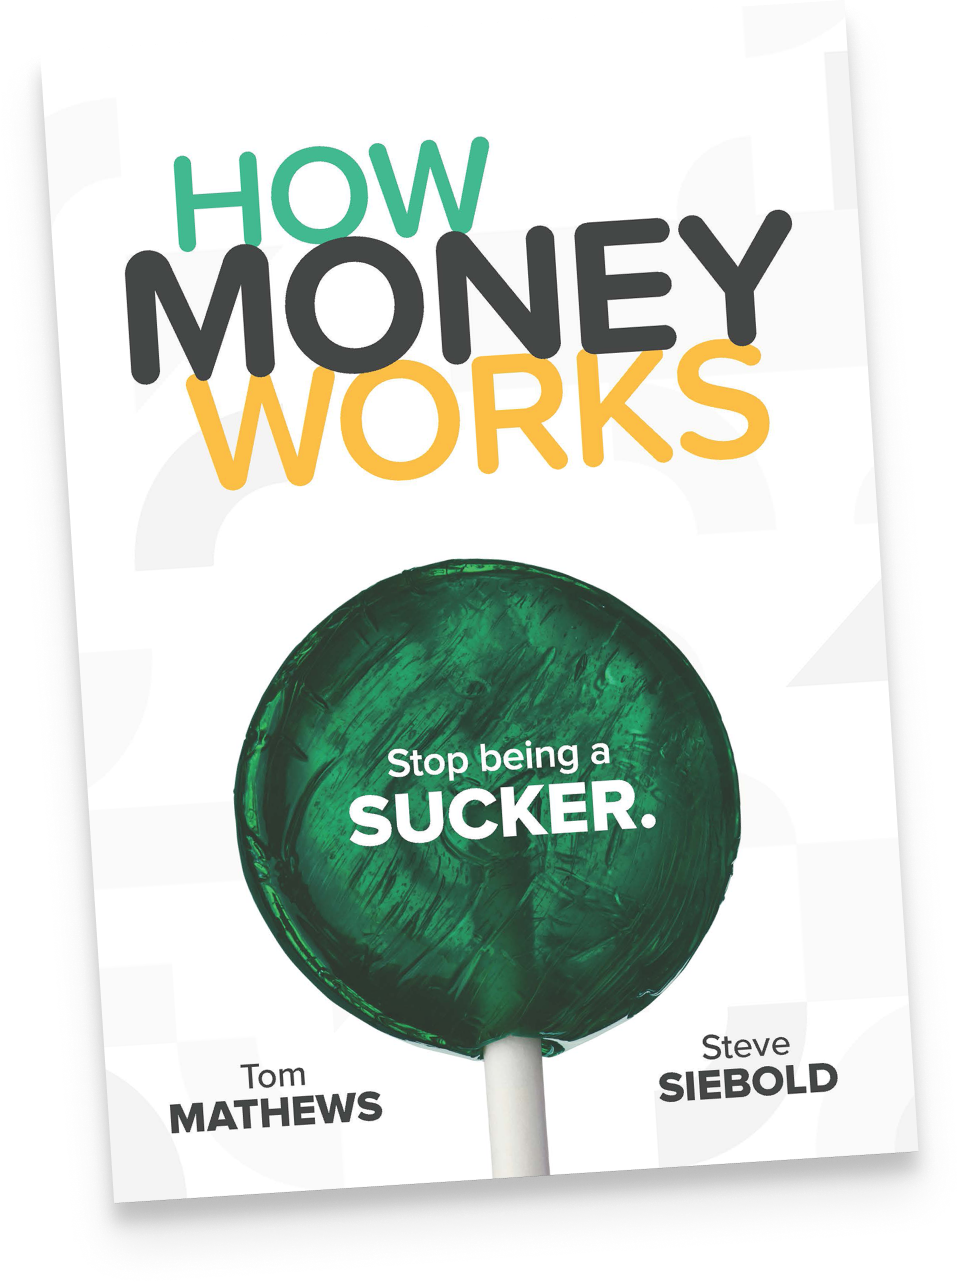 How Money Works book cover